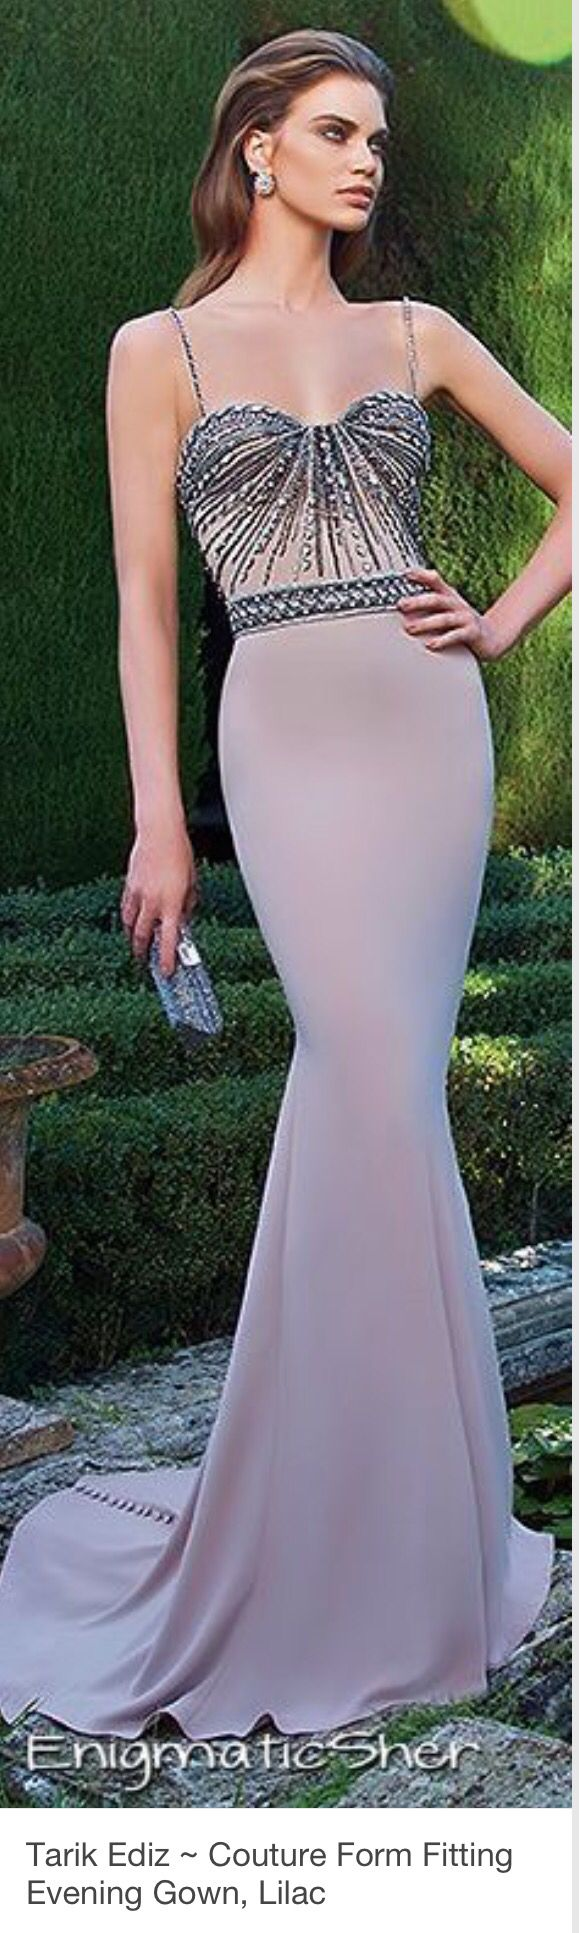 Pin by gabriela farias on alta costura pinterest gowns prom and